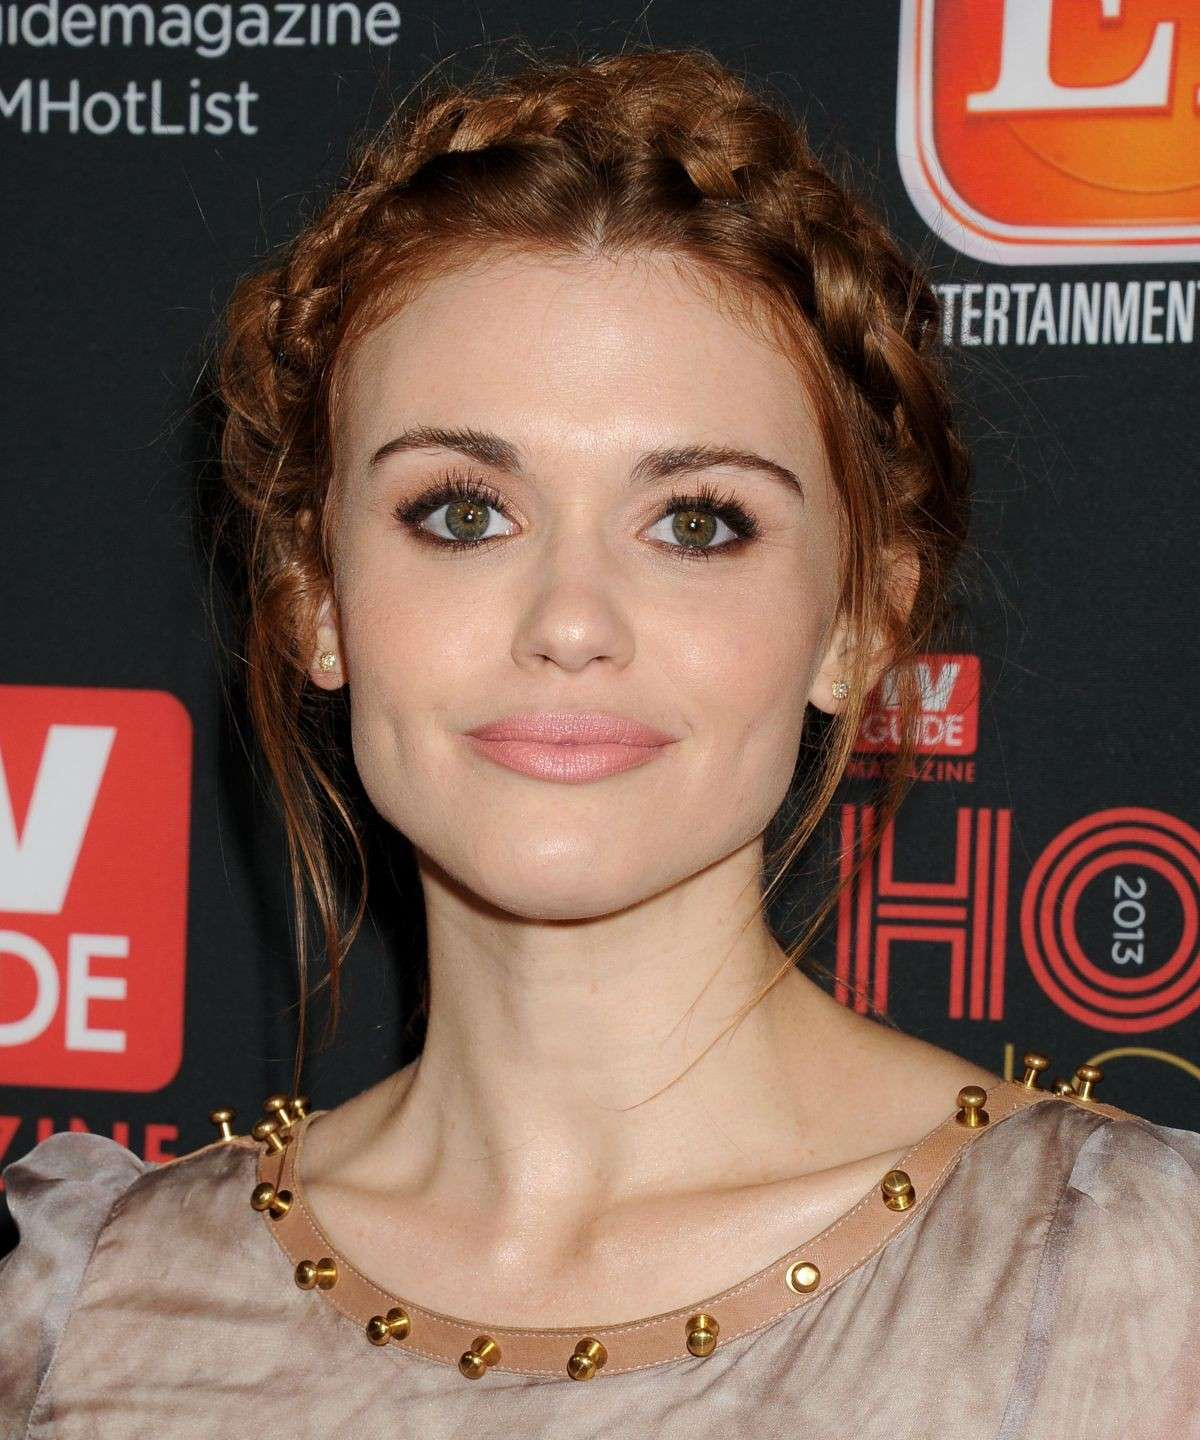 Acconciatura con treccia di Holland Roden